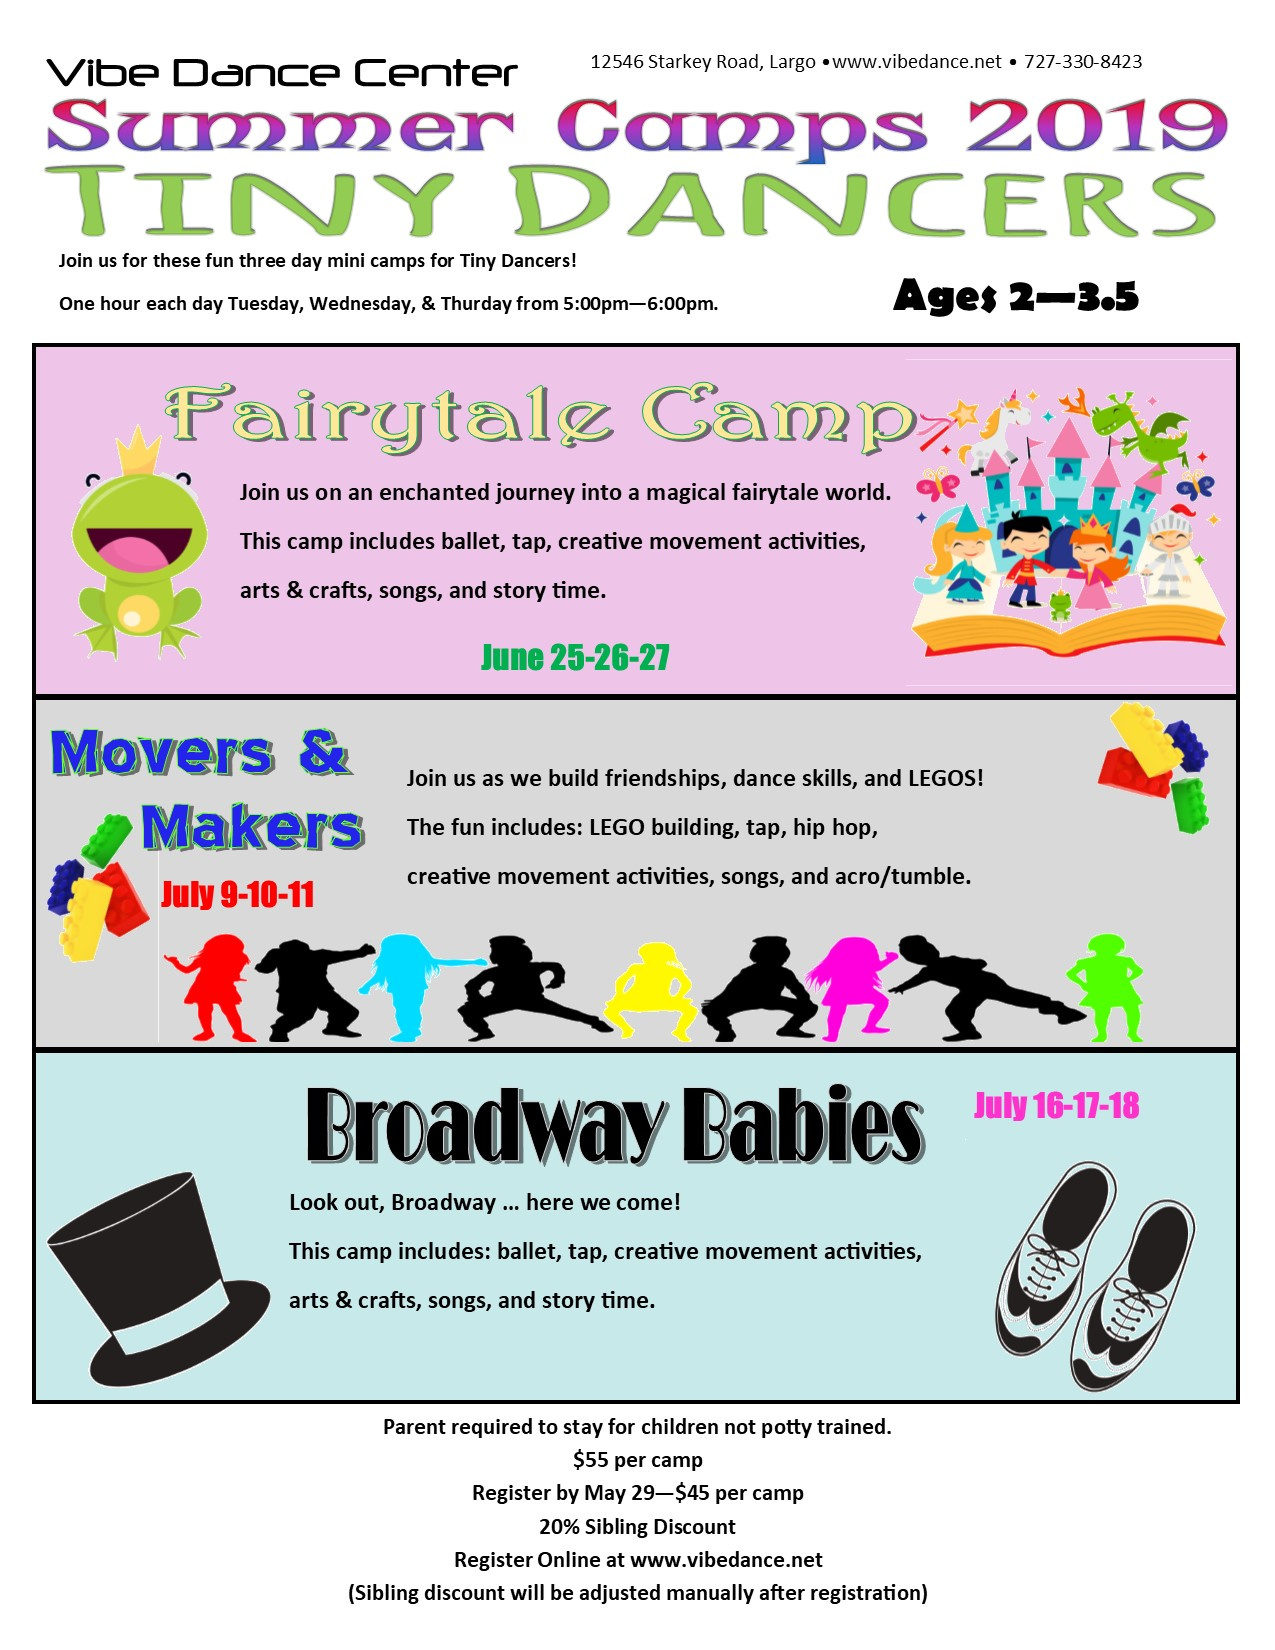 Tiny Dancer Summer Camps 2019